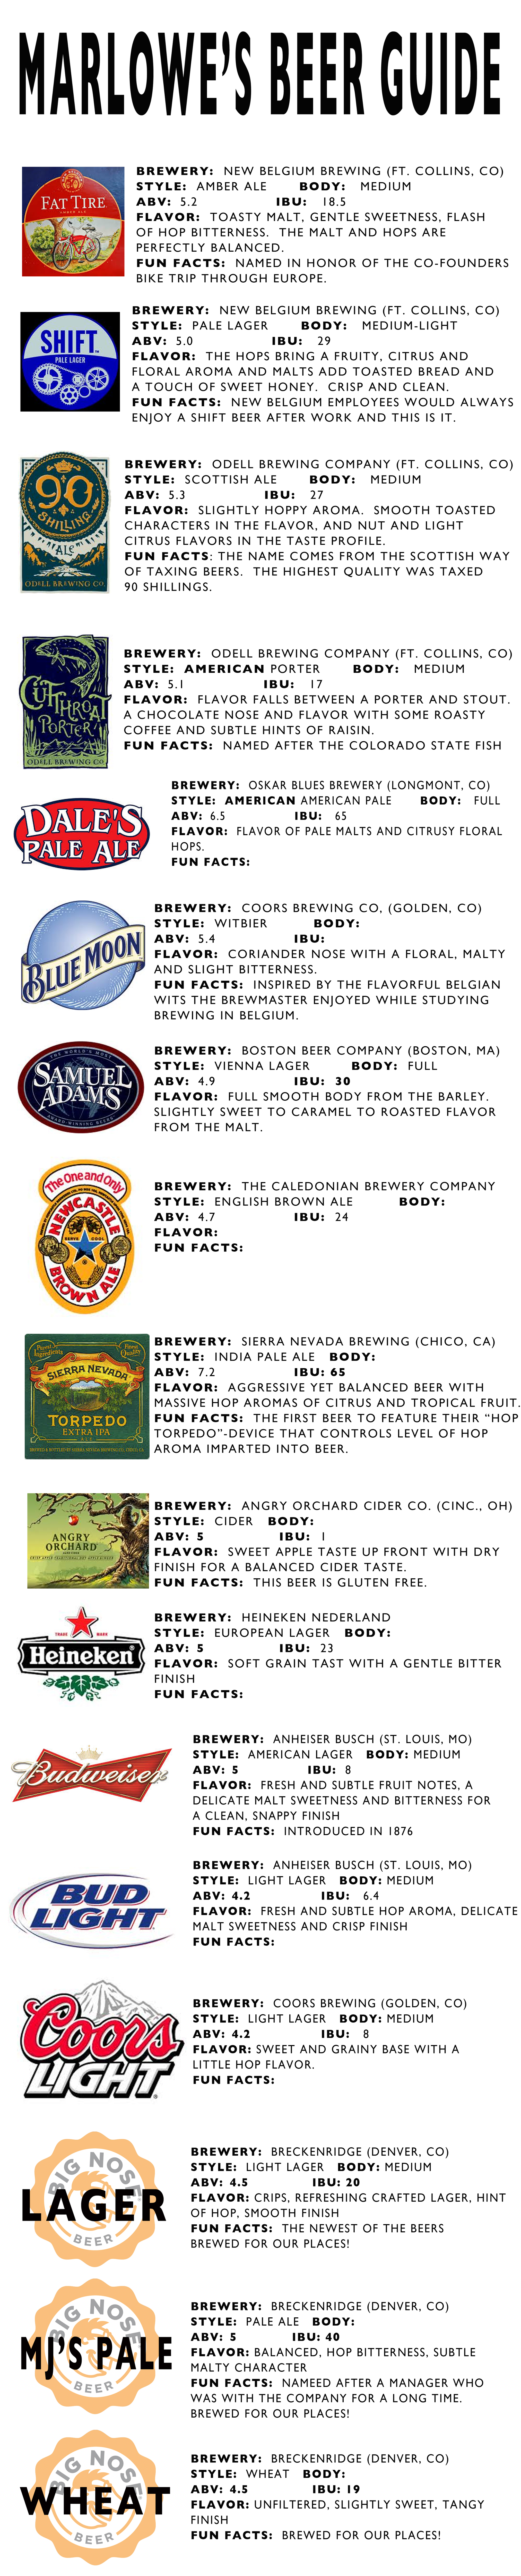 Everything you need to know about our draft beers! (not